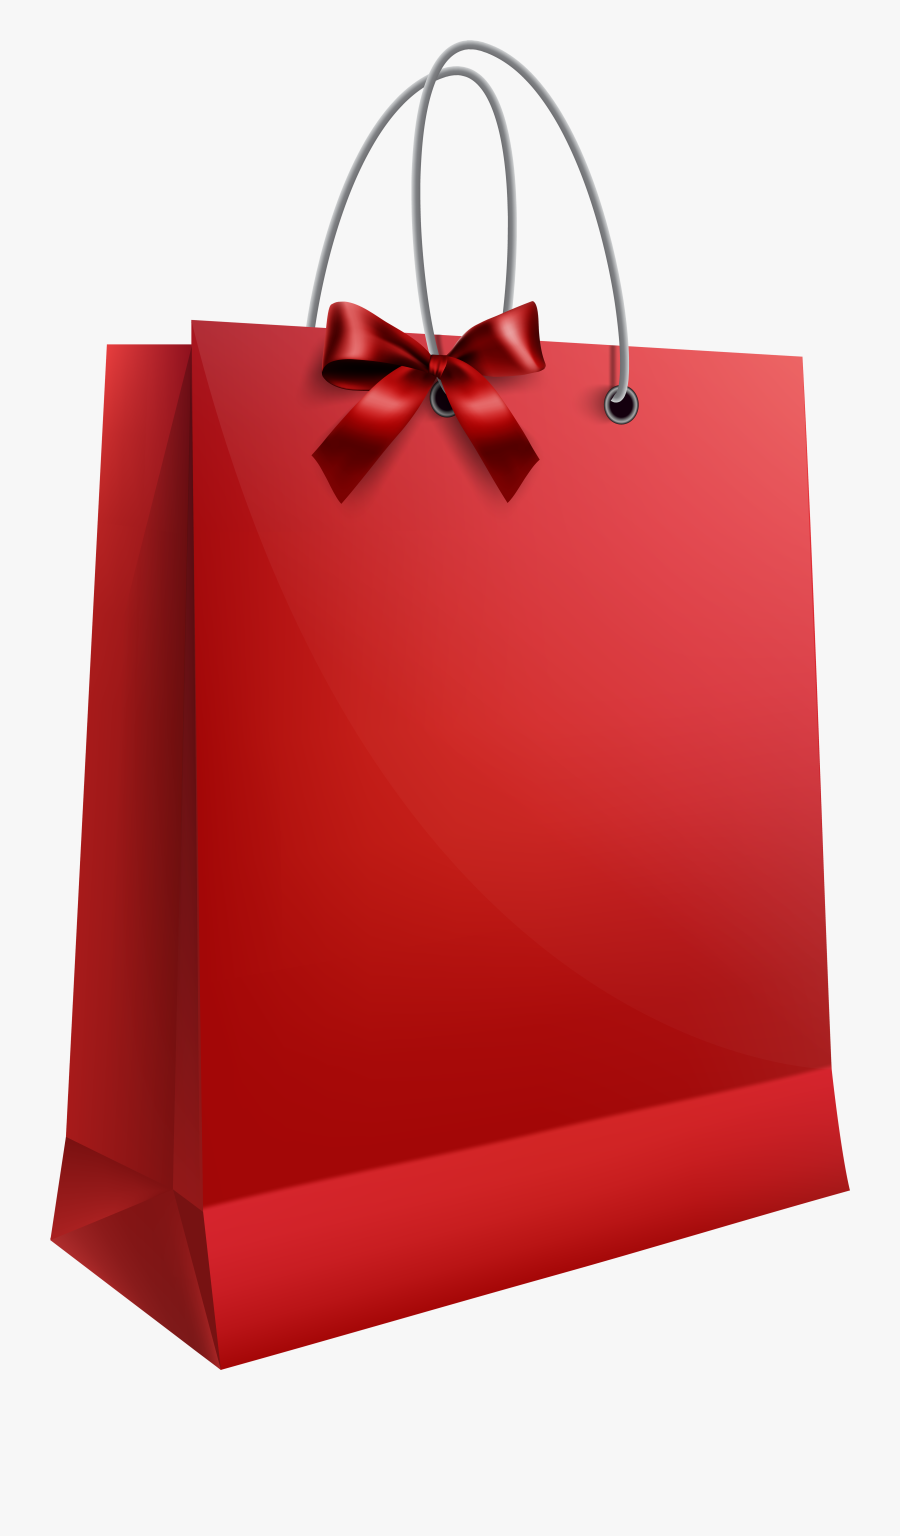 Red Gift Bag Png, Transparent Clipart